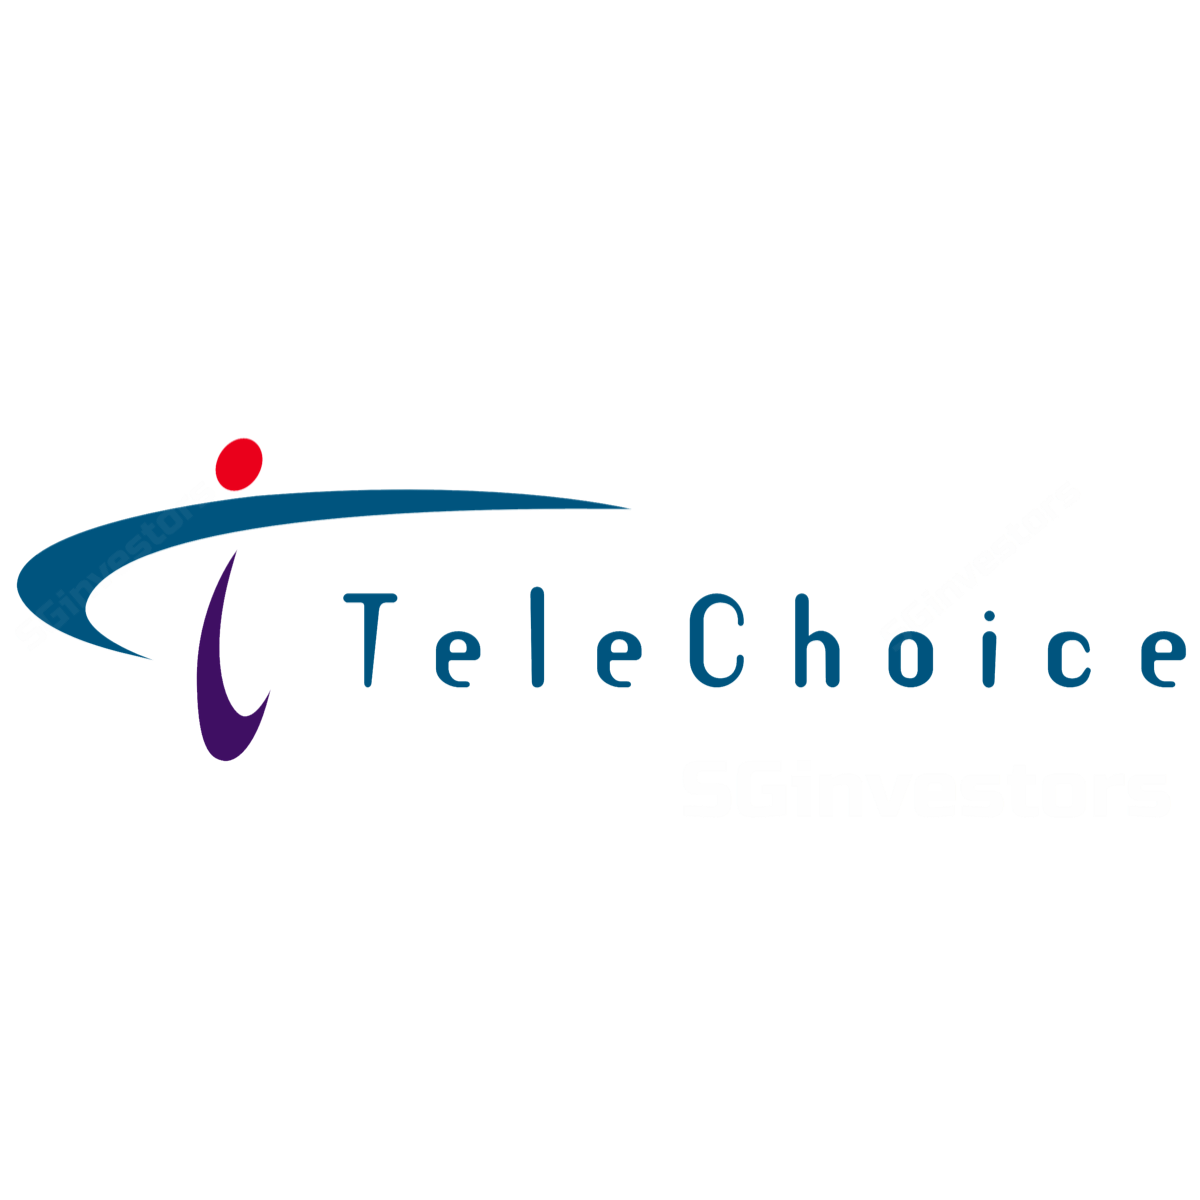 TeleChoice International Limited - Tayrona Financial Research 2018-08-27: Expands Service Offerings With New Huawei Concept Stores